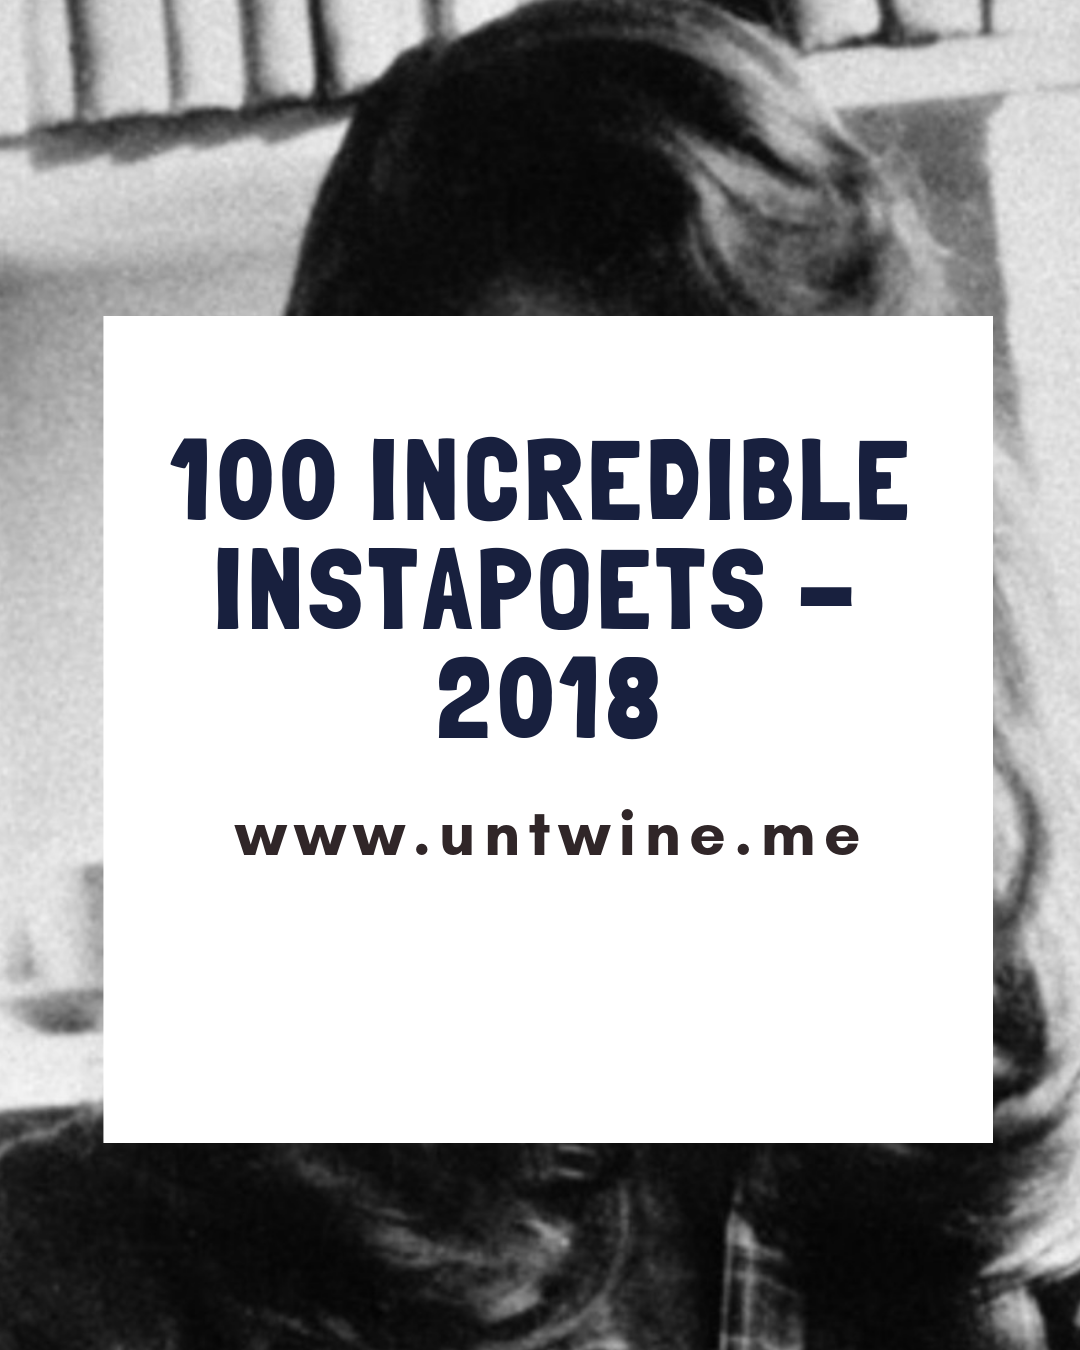 100 INCREDIBLE INSTAPOETS 2018: MAGALI ROSEMOON